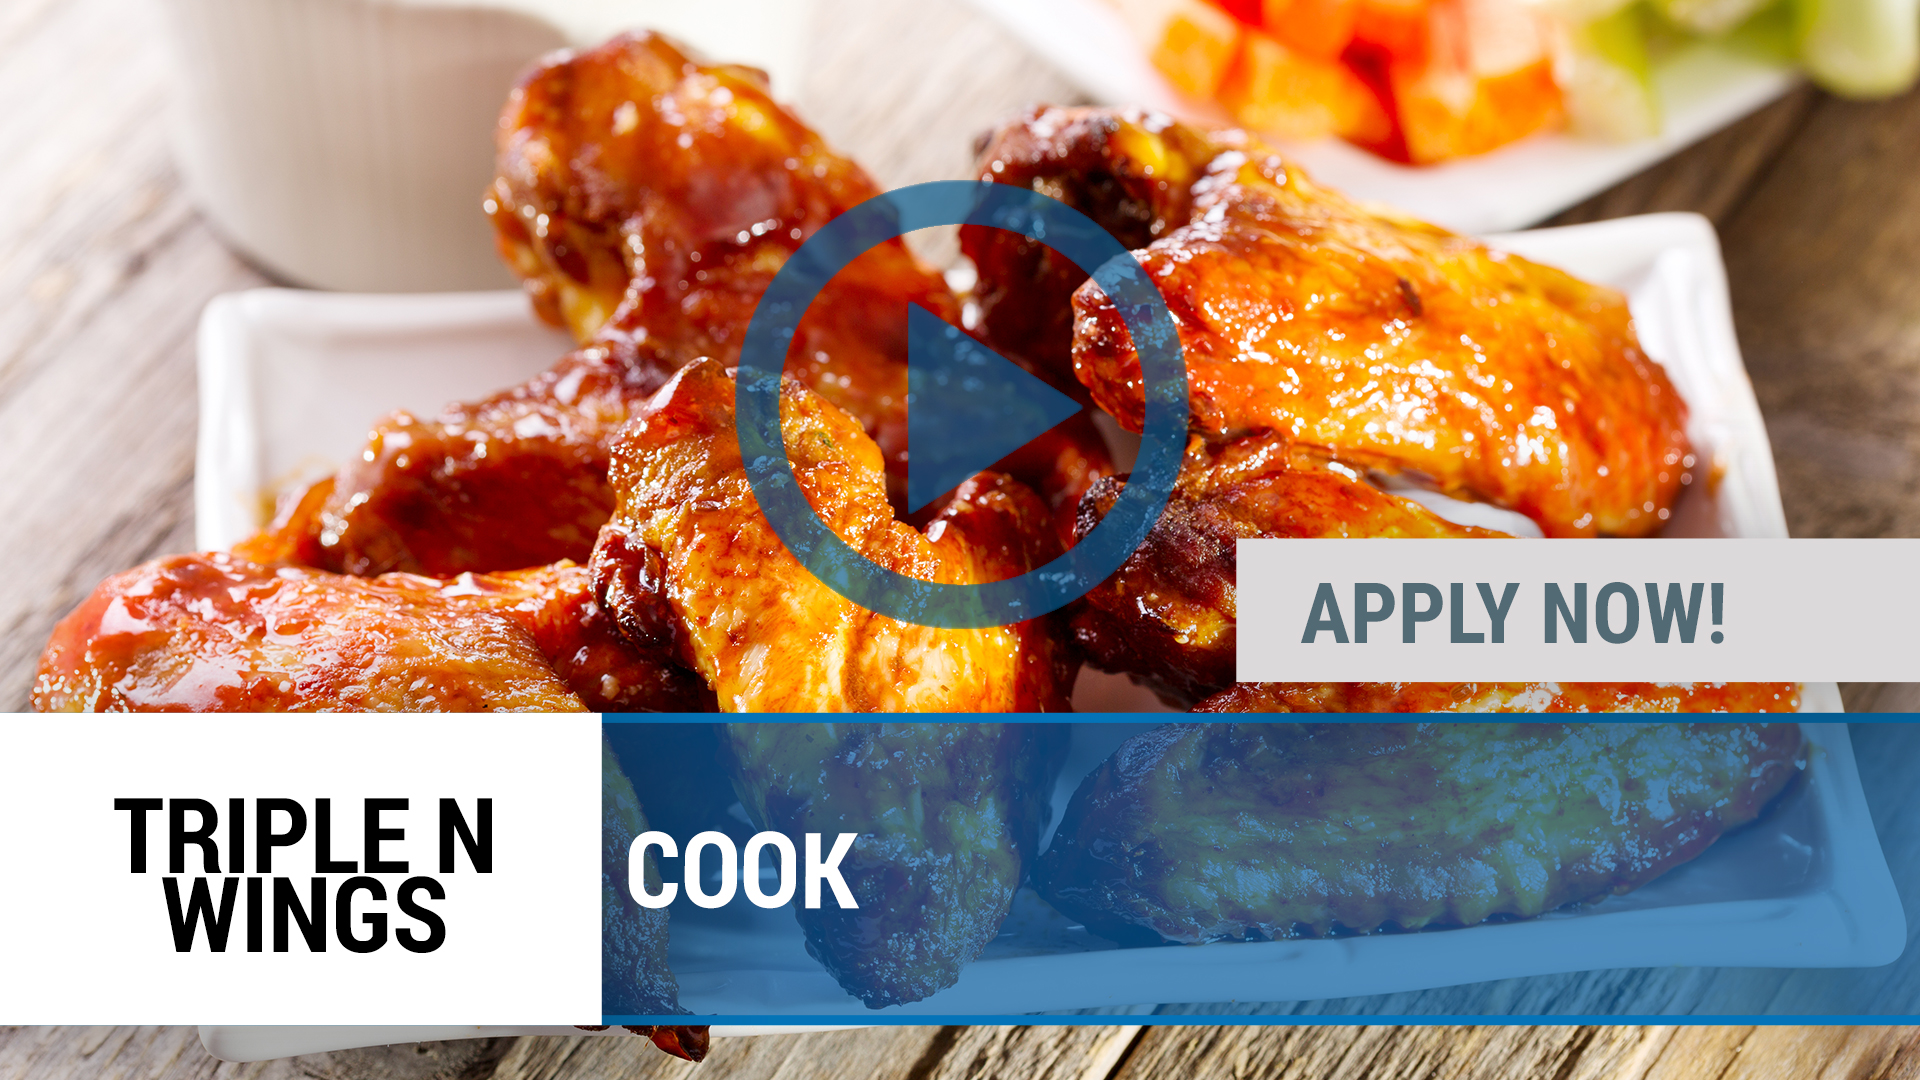 Watch our careers video for available job opening Cook in Highland Village, TX